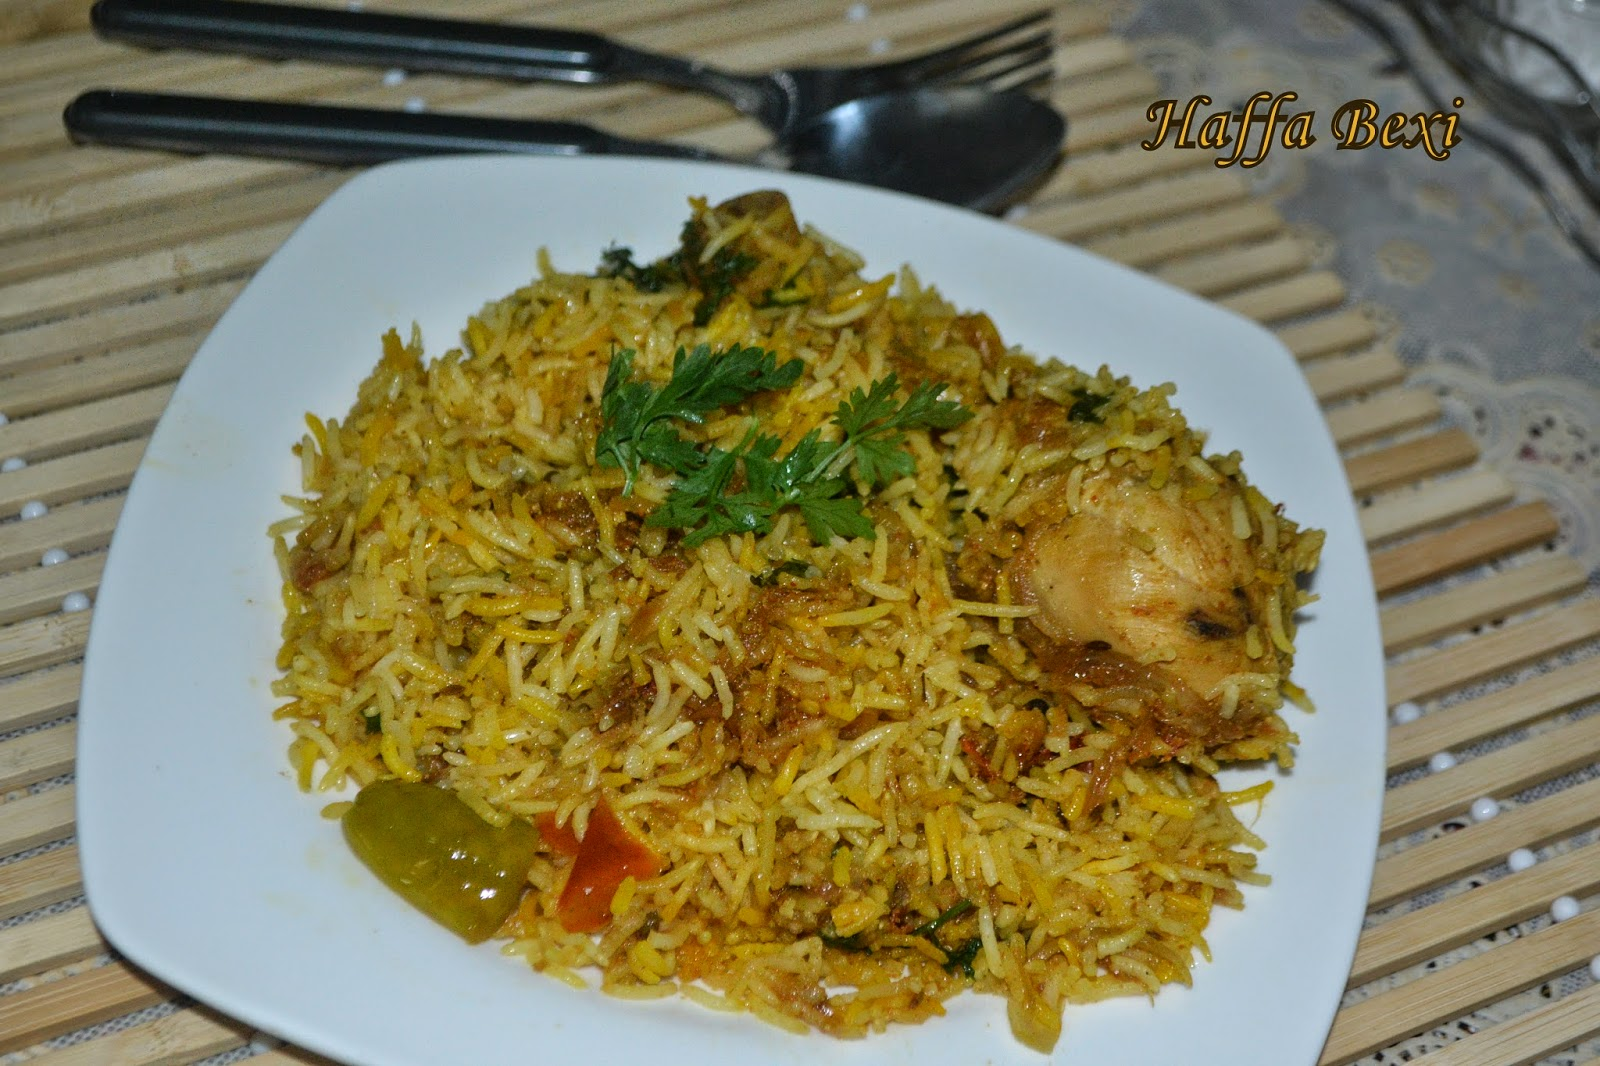 basmati rice recipes, biryani rice, brown rice recipes, indian rice recipes, Biryani, biryani recipe, recipe of biryani, chicken biryani,chicken biryani recipe, how to make chicken biryani,how to prepare chicken biryani, easy chicken biryani recipe,   pakistani chicken biryani recipe,